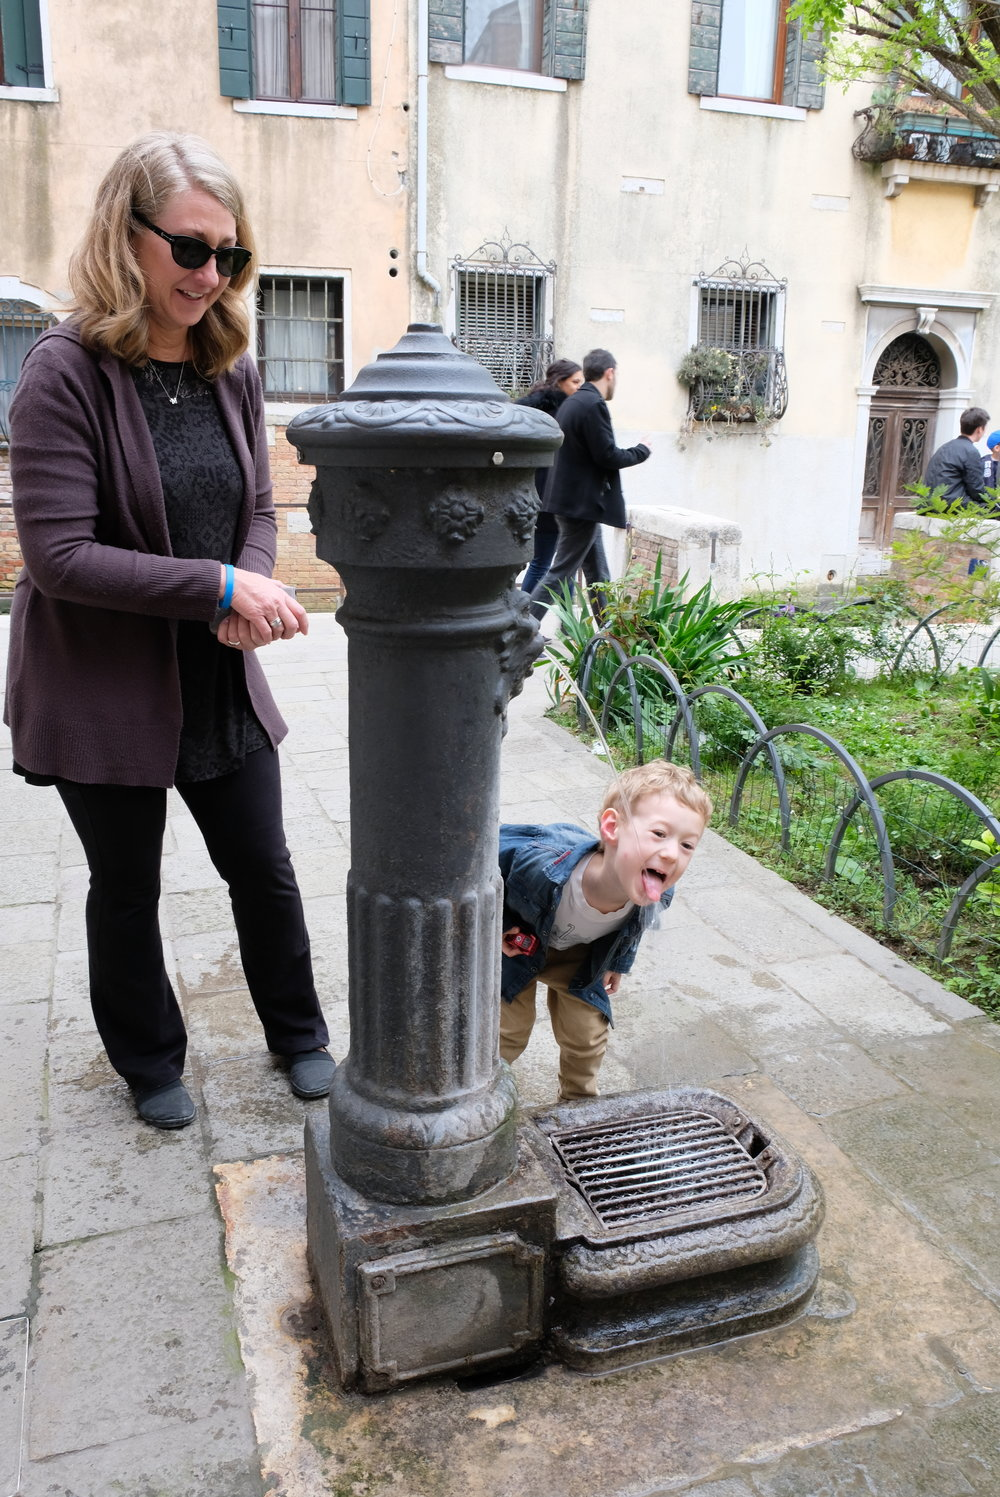 Dosoduro Neighborhood in Venice, Italy | Venice with Kids | Blog post by Totes and the City